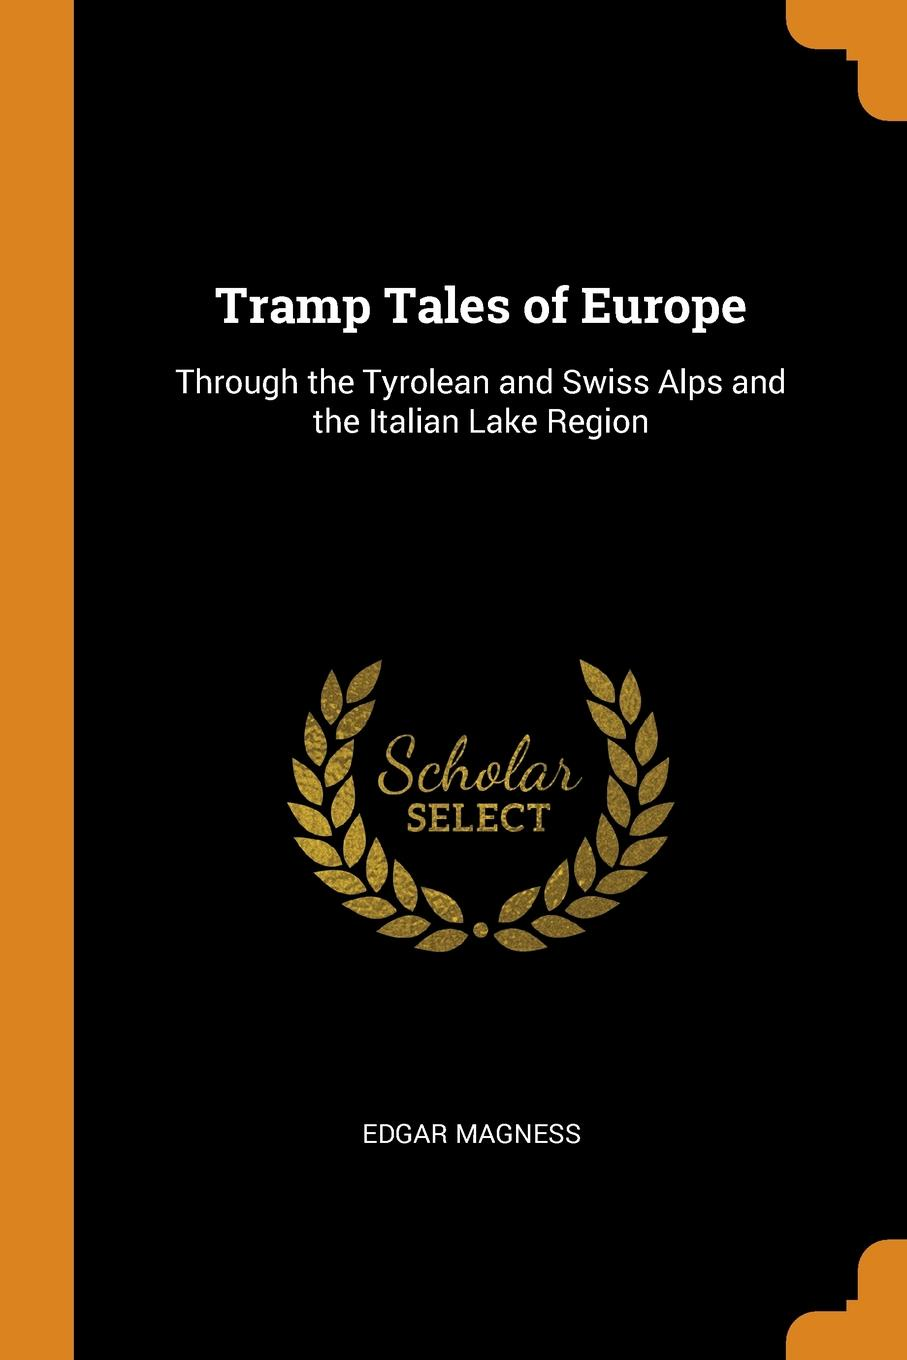 Edgar Magness Tramp Tales of Europe. Through the Tyrolean and Swiss Alps and the Italian Lake Region